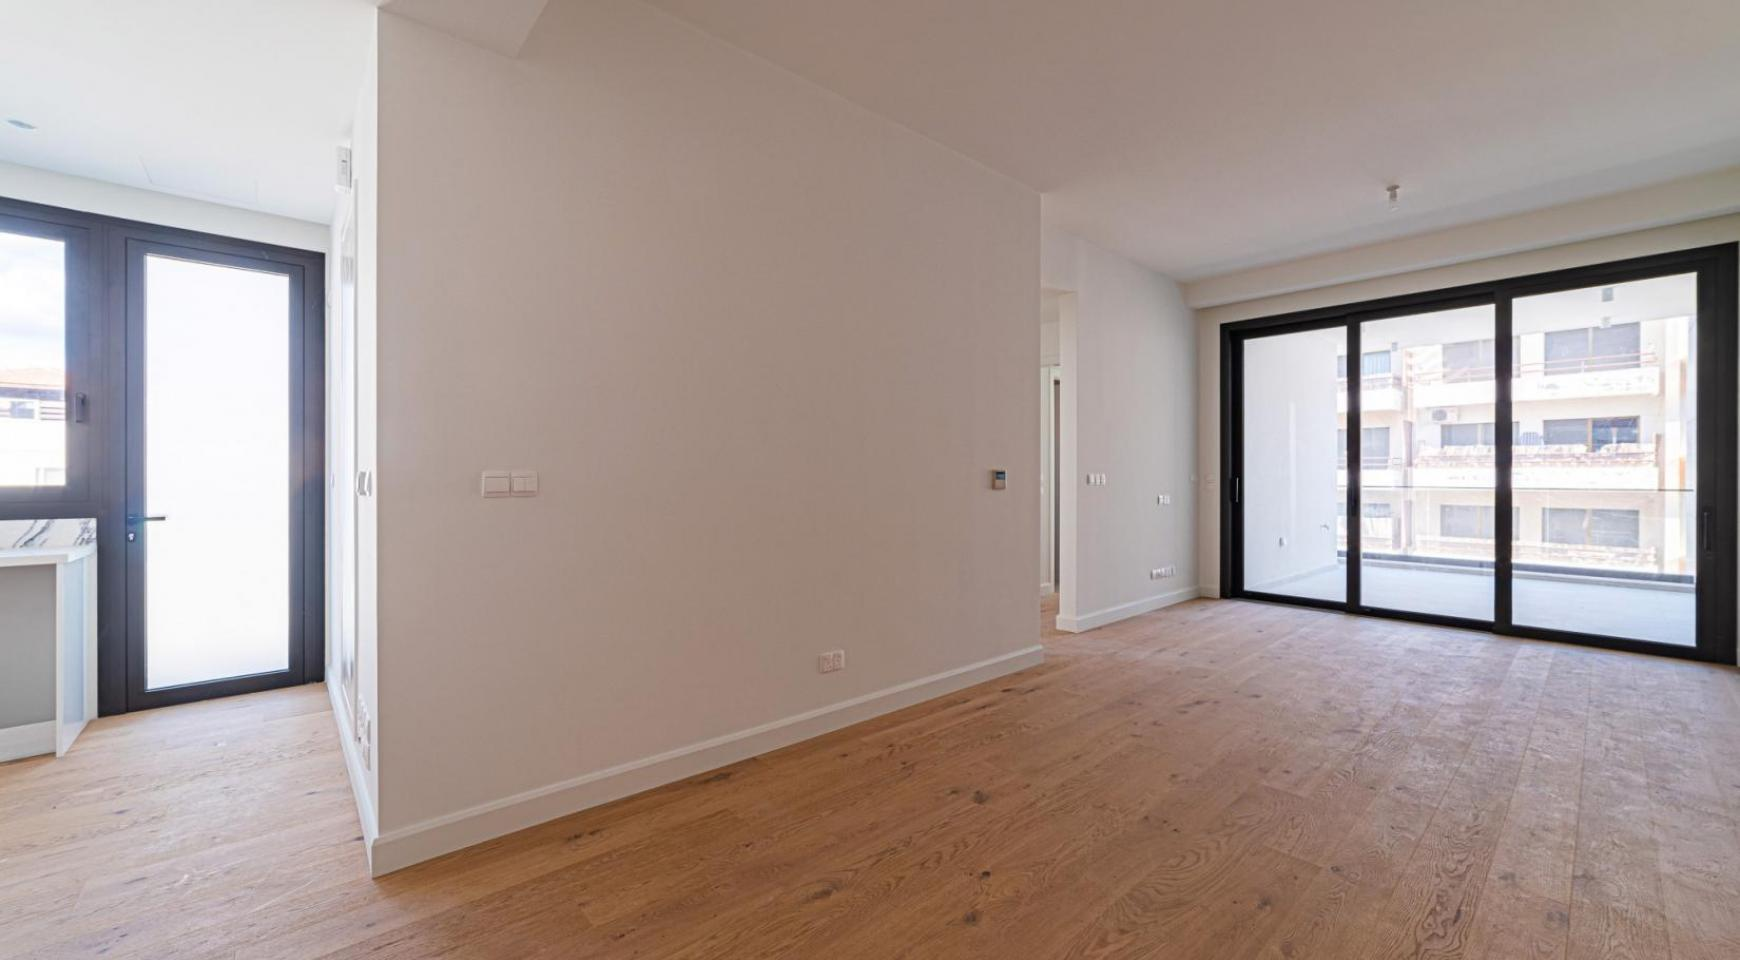 HORTENSIA RESIDENCE, Apt. 101. 2 Bedroom Apartment  in a New Complex near the Sea - 8